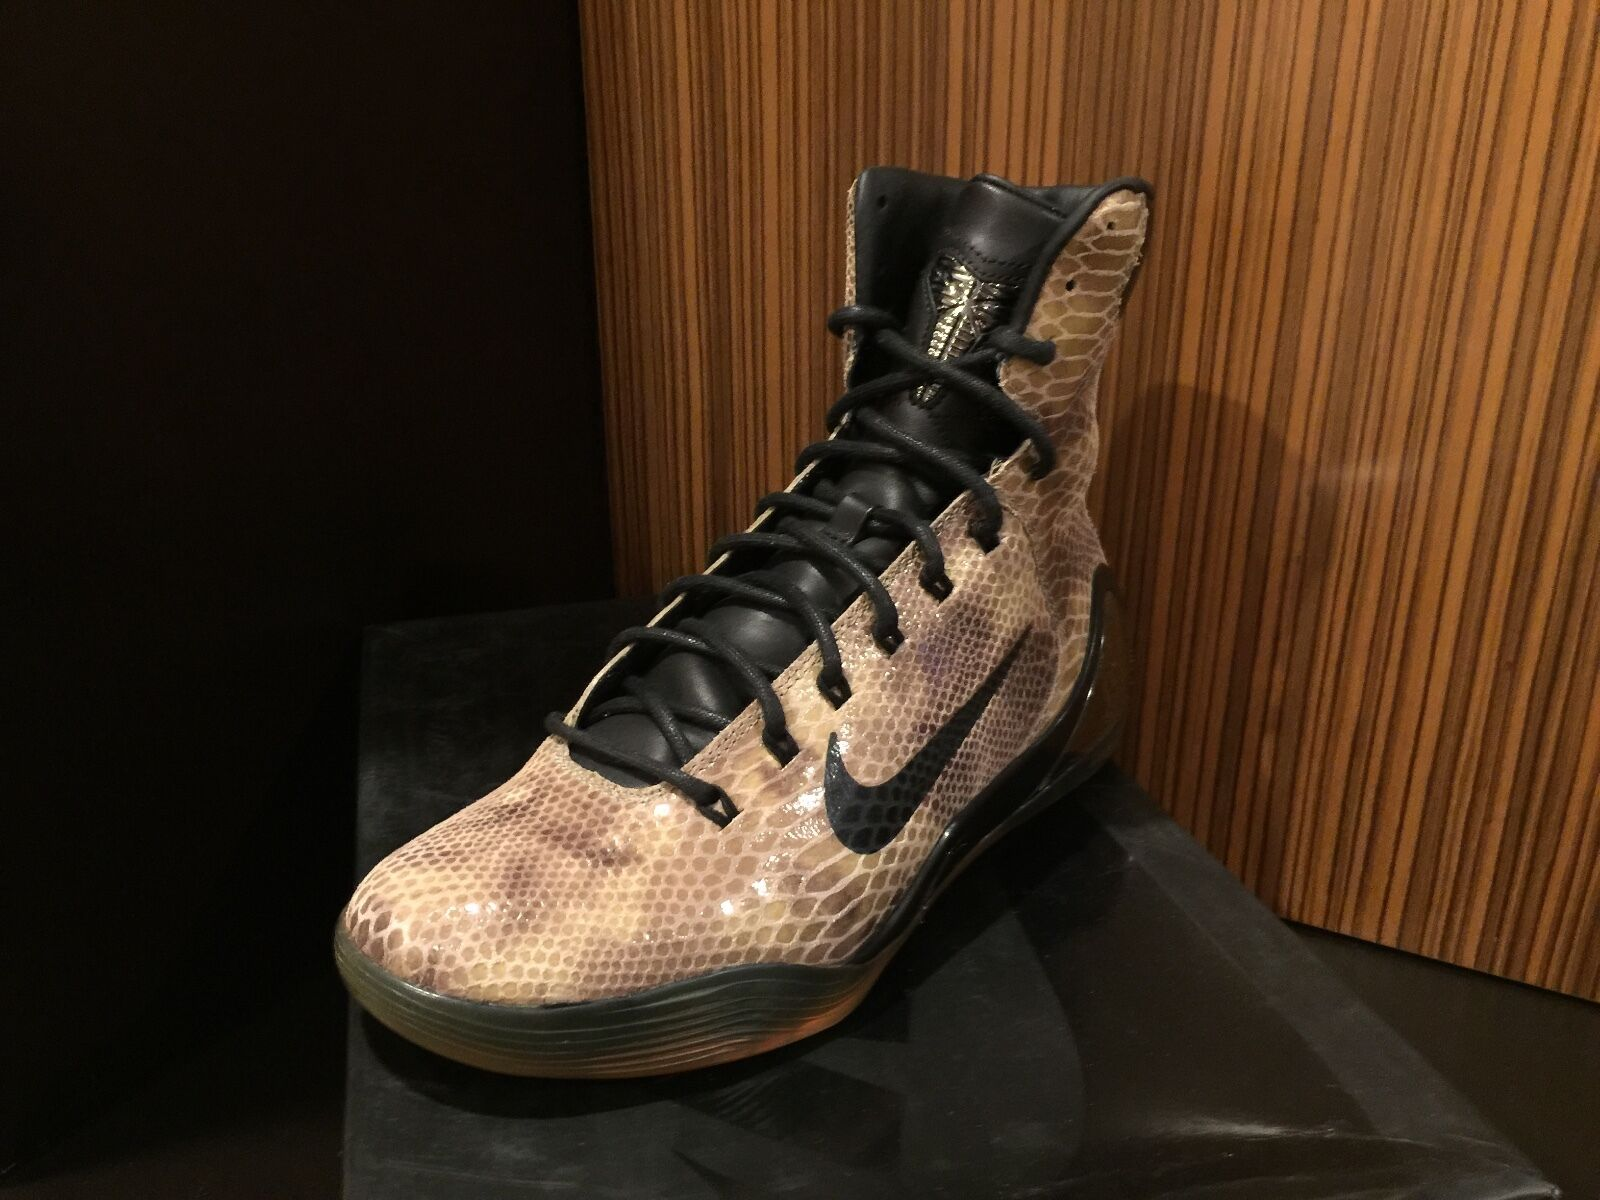 Nike Air KOBE High Ext Snake Black what the Prelude mamba moment 9 low 8 7 6 11 The most popular shoes for men and women